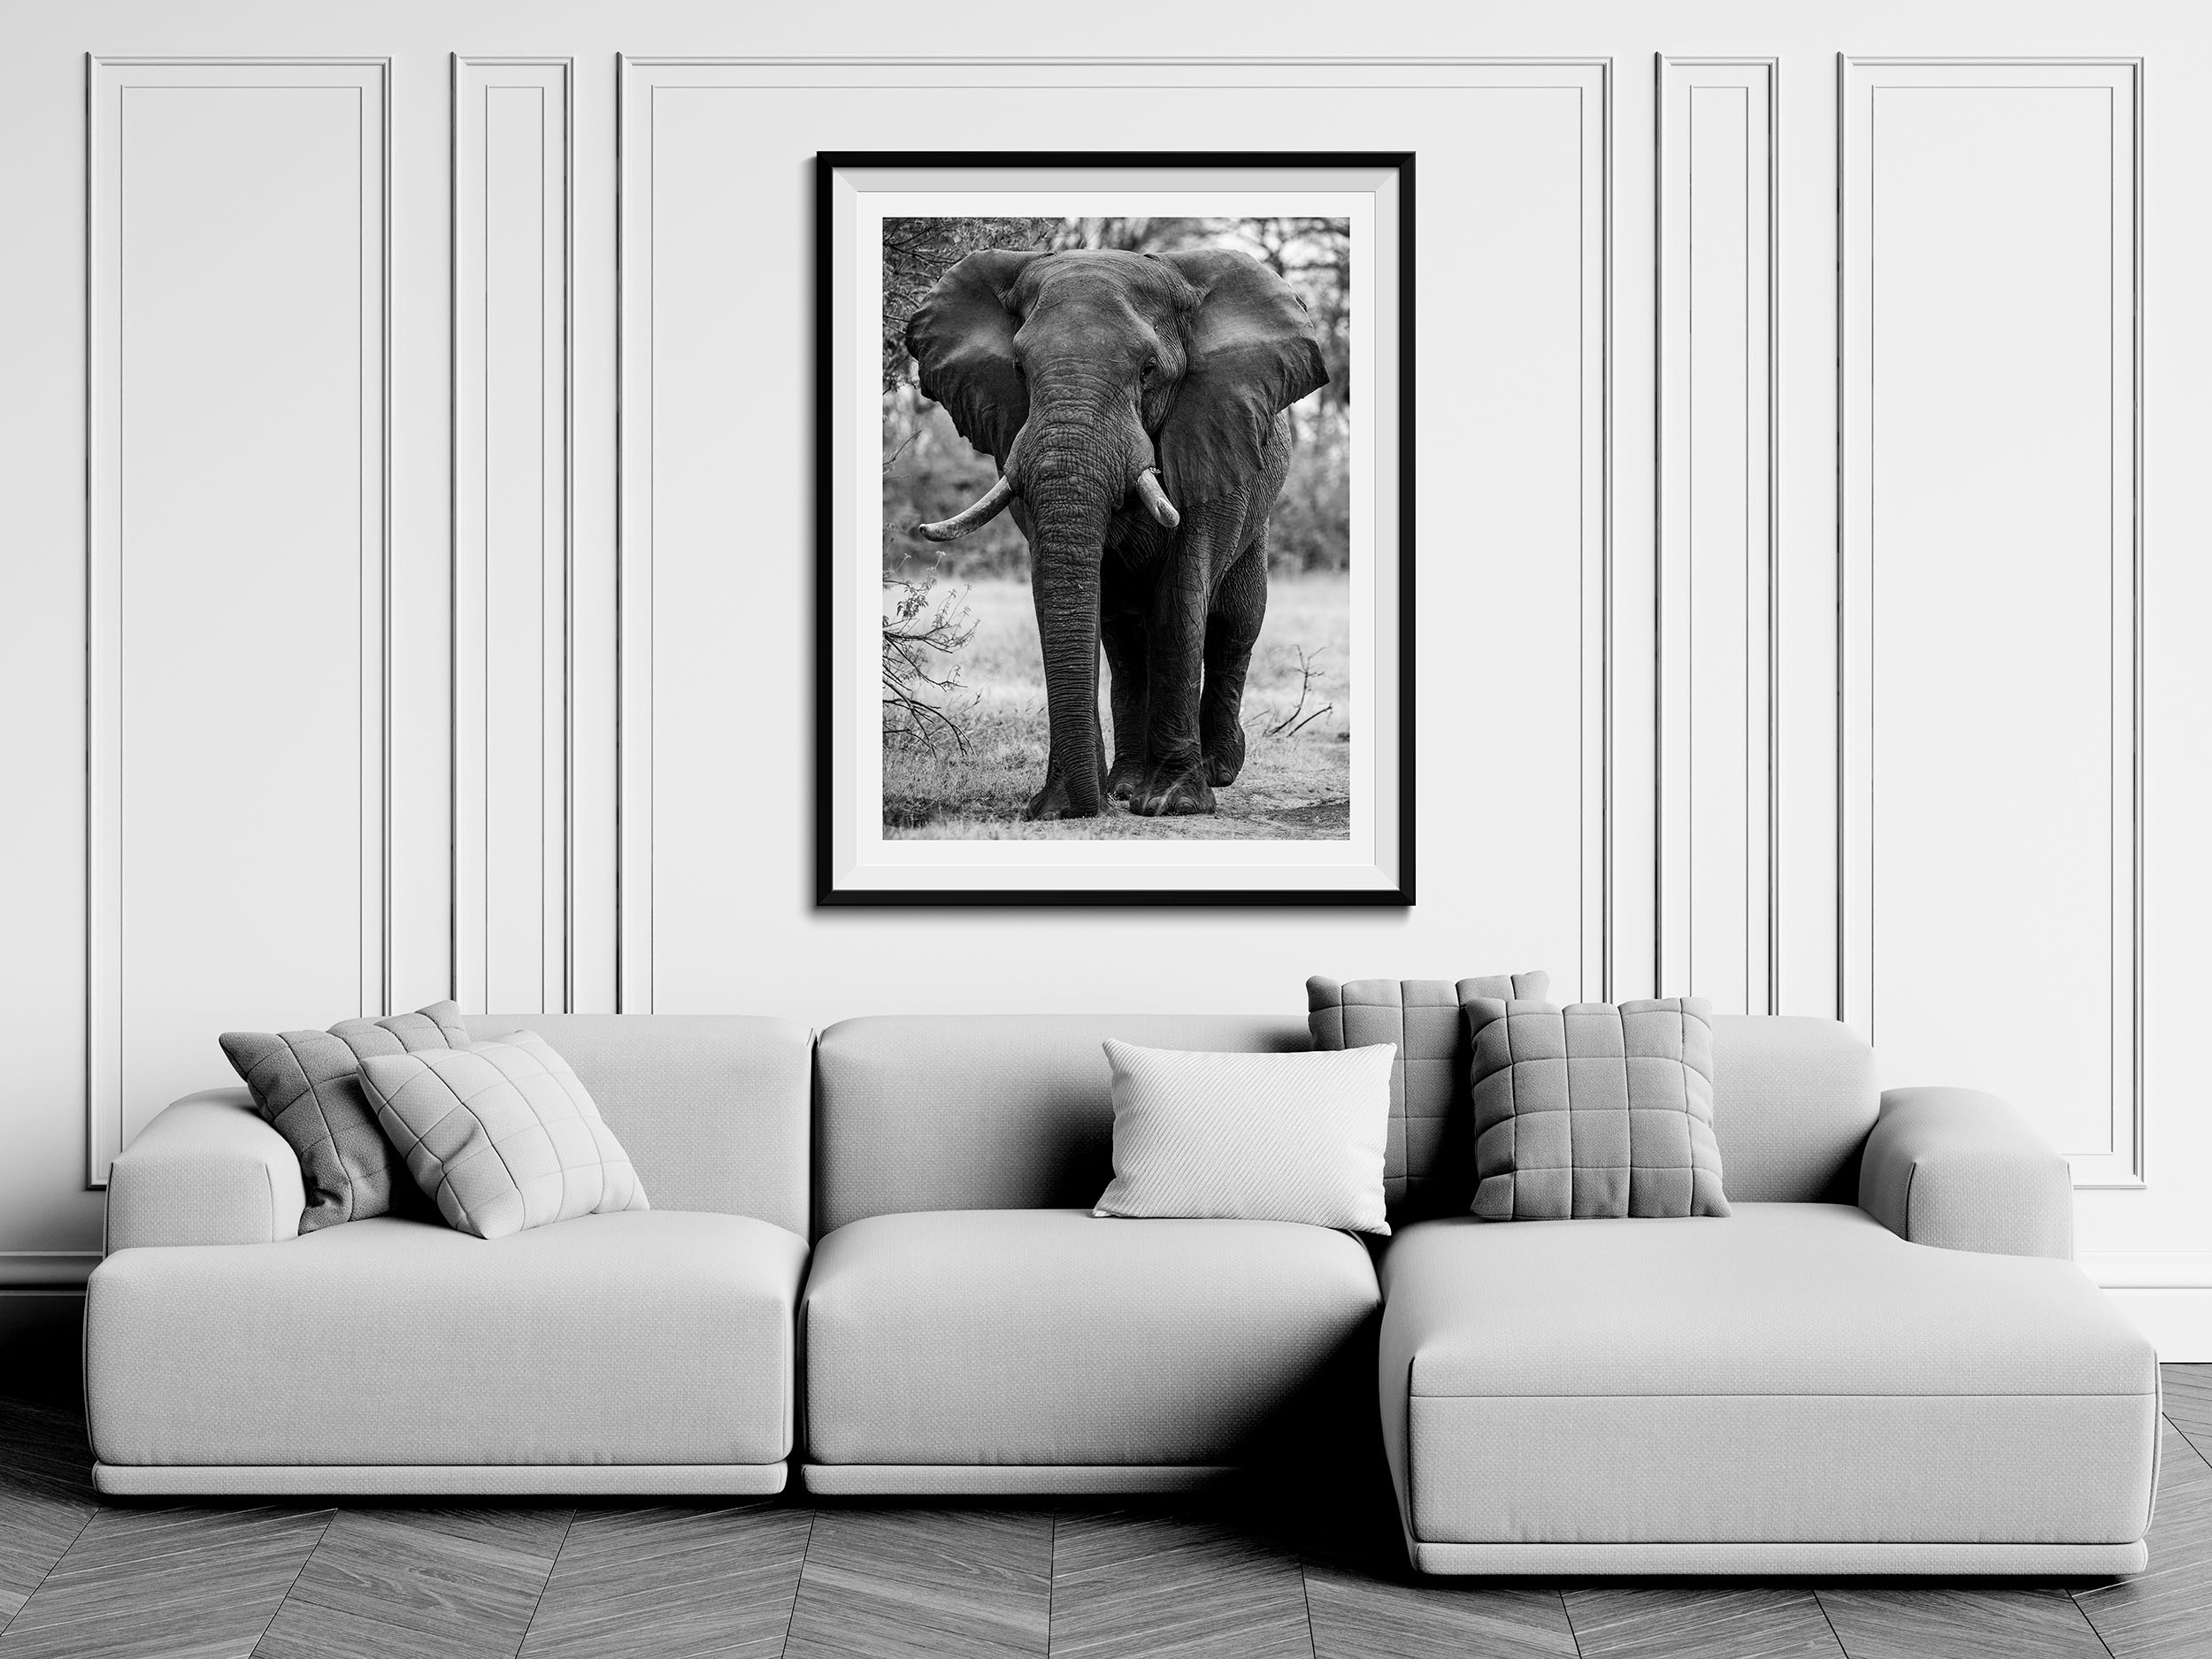 The Bull - Fine Art Photography Print